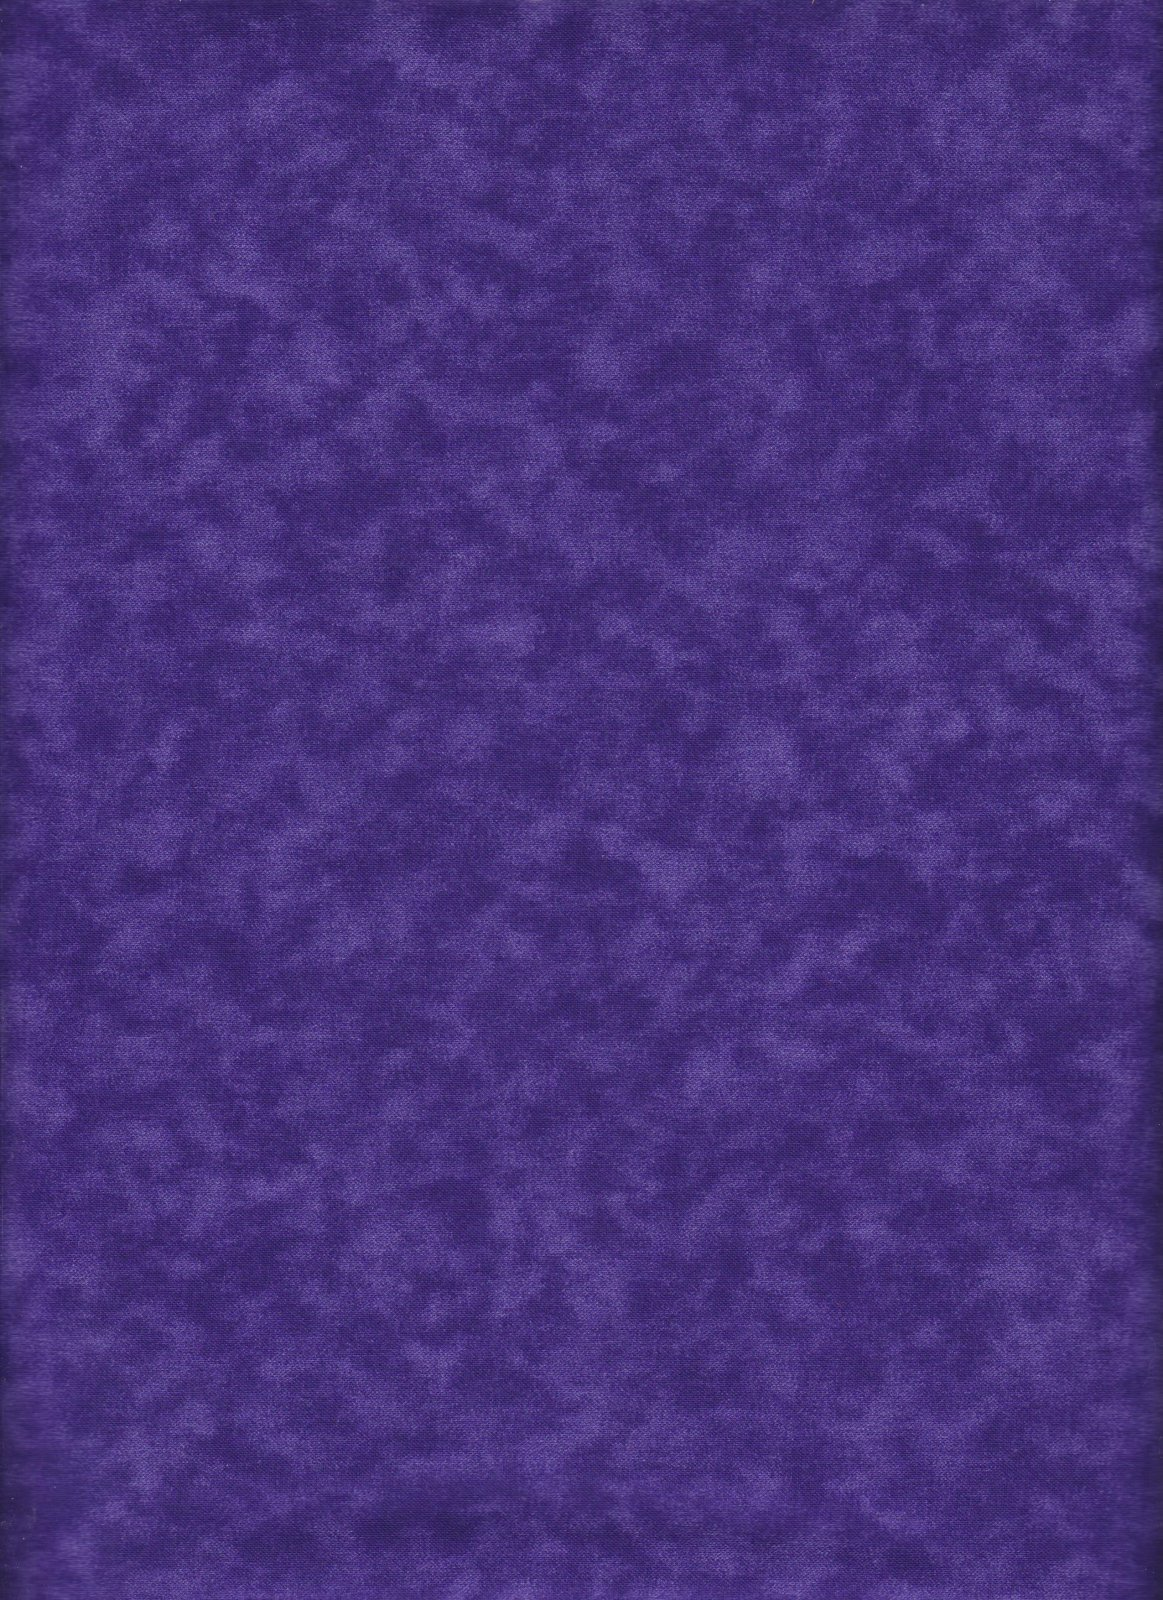 Quilt 108 Backing Suede Texture 44395-405 Bright Purple